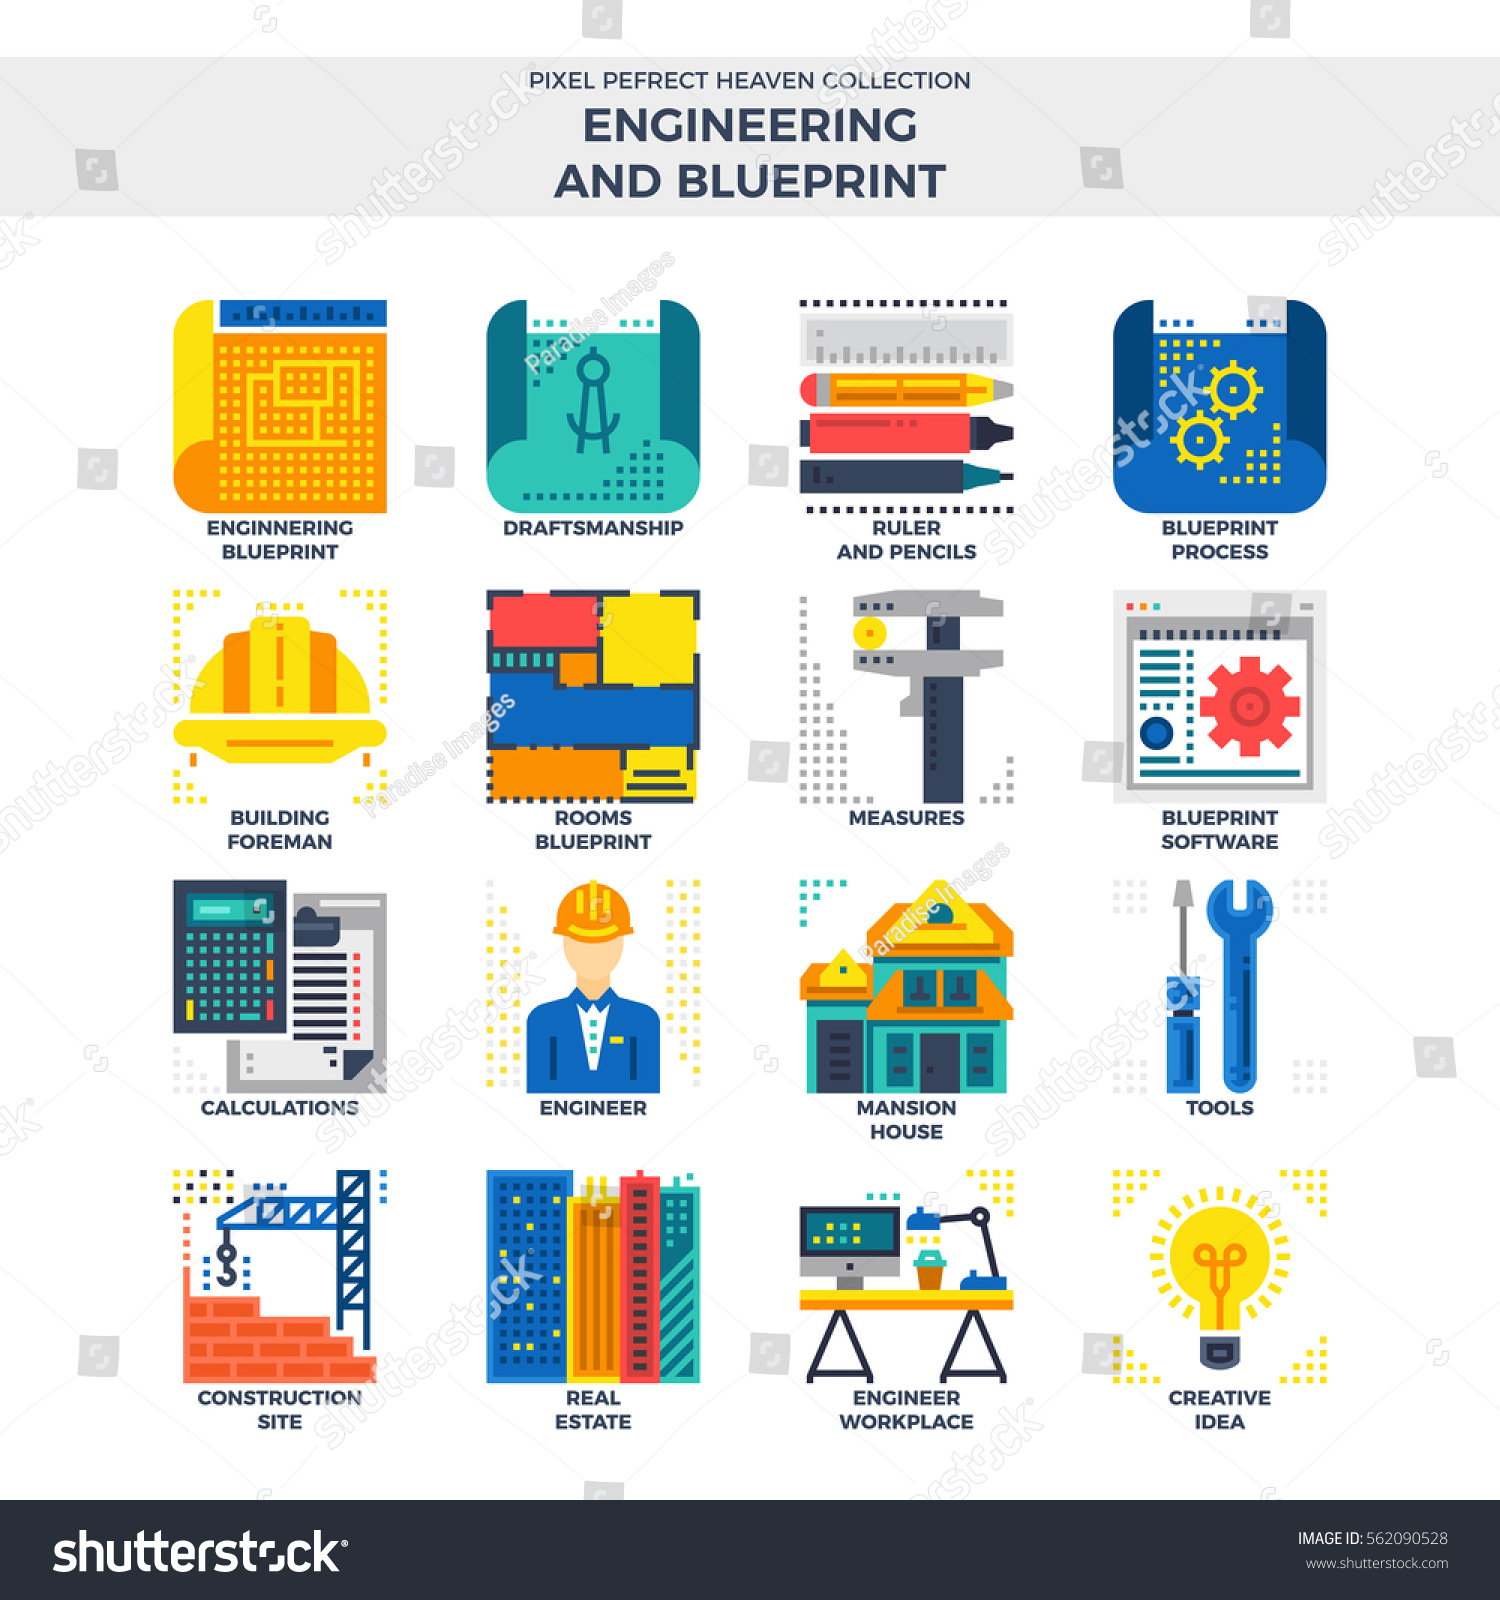 Engineering blueprint flat icon set material stock vector engineering and blueprint flat icon set material design illustration concept high quality pixel perfect malvernweather Images